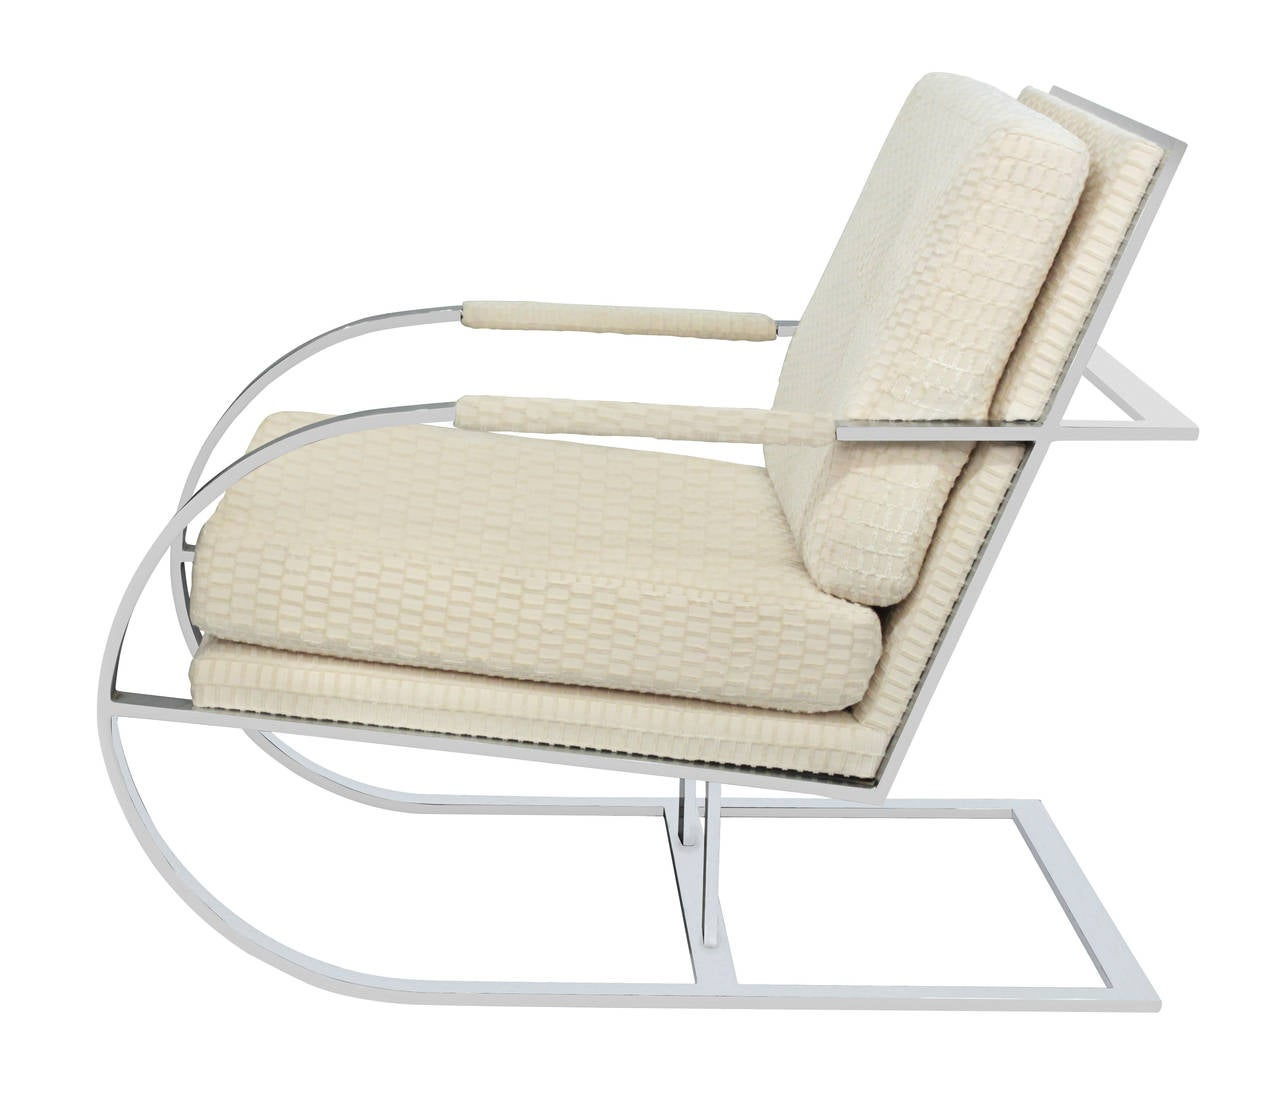 Mid-Century Modern Cantilevered Lounge Chair with Frame in Chrome by Milo Baughman For Sale